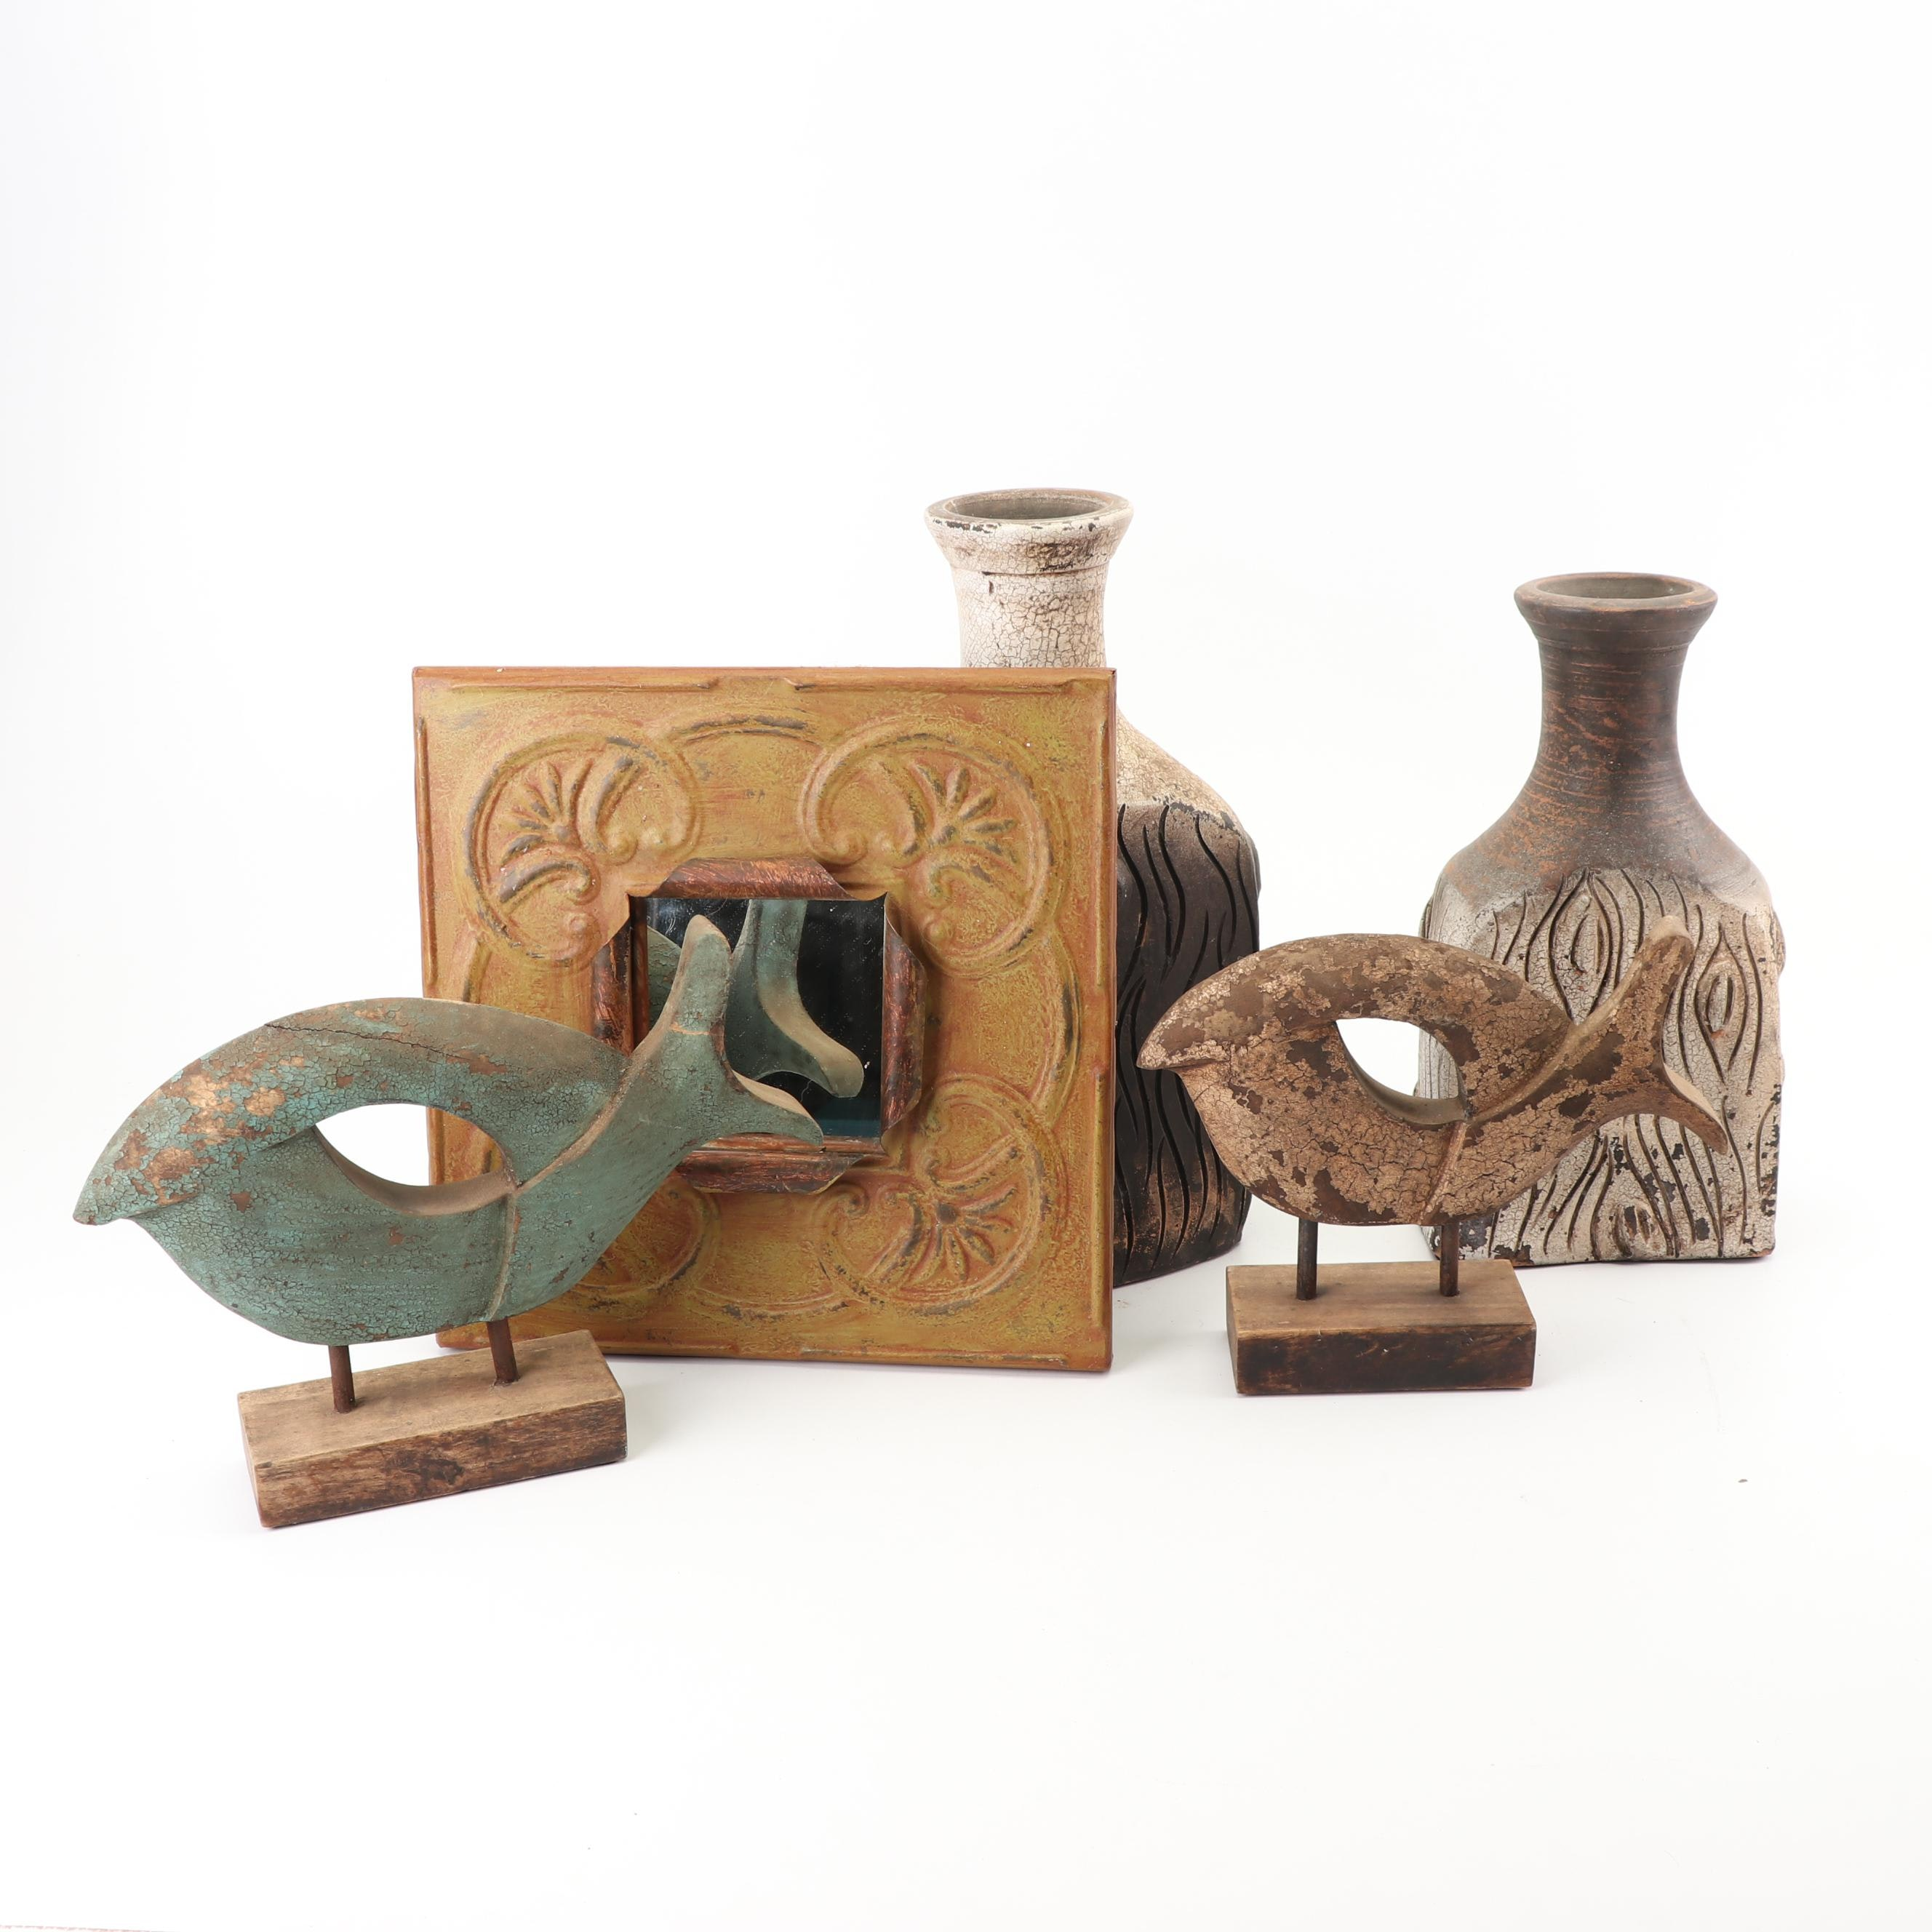 Textured Ceramic Vases with Abstract Bird Sculptures and Accent Mirror